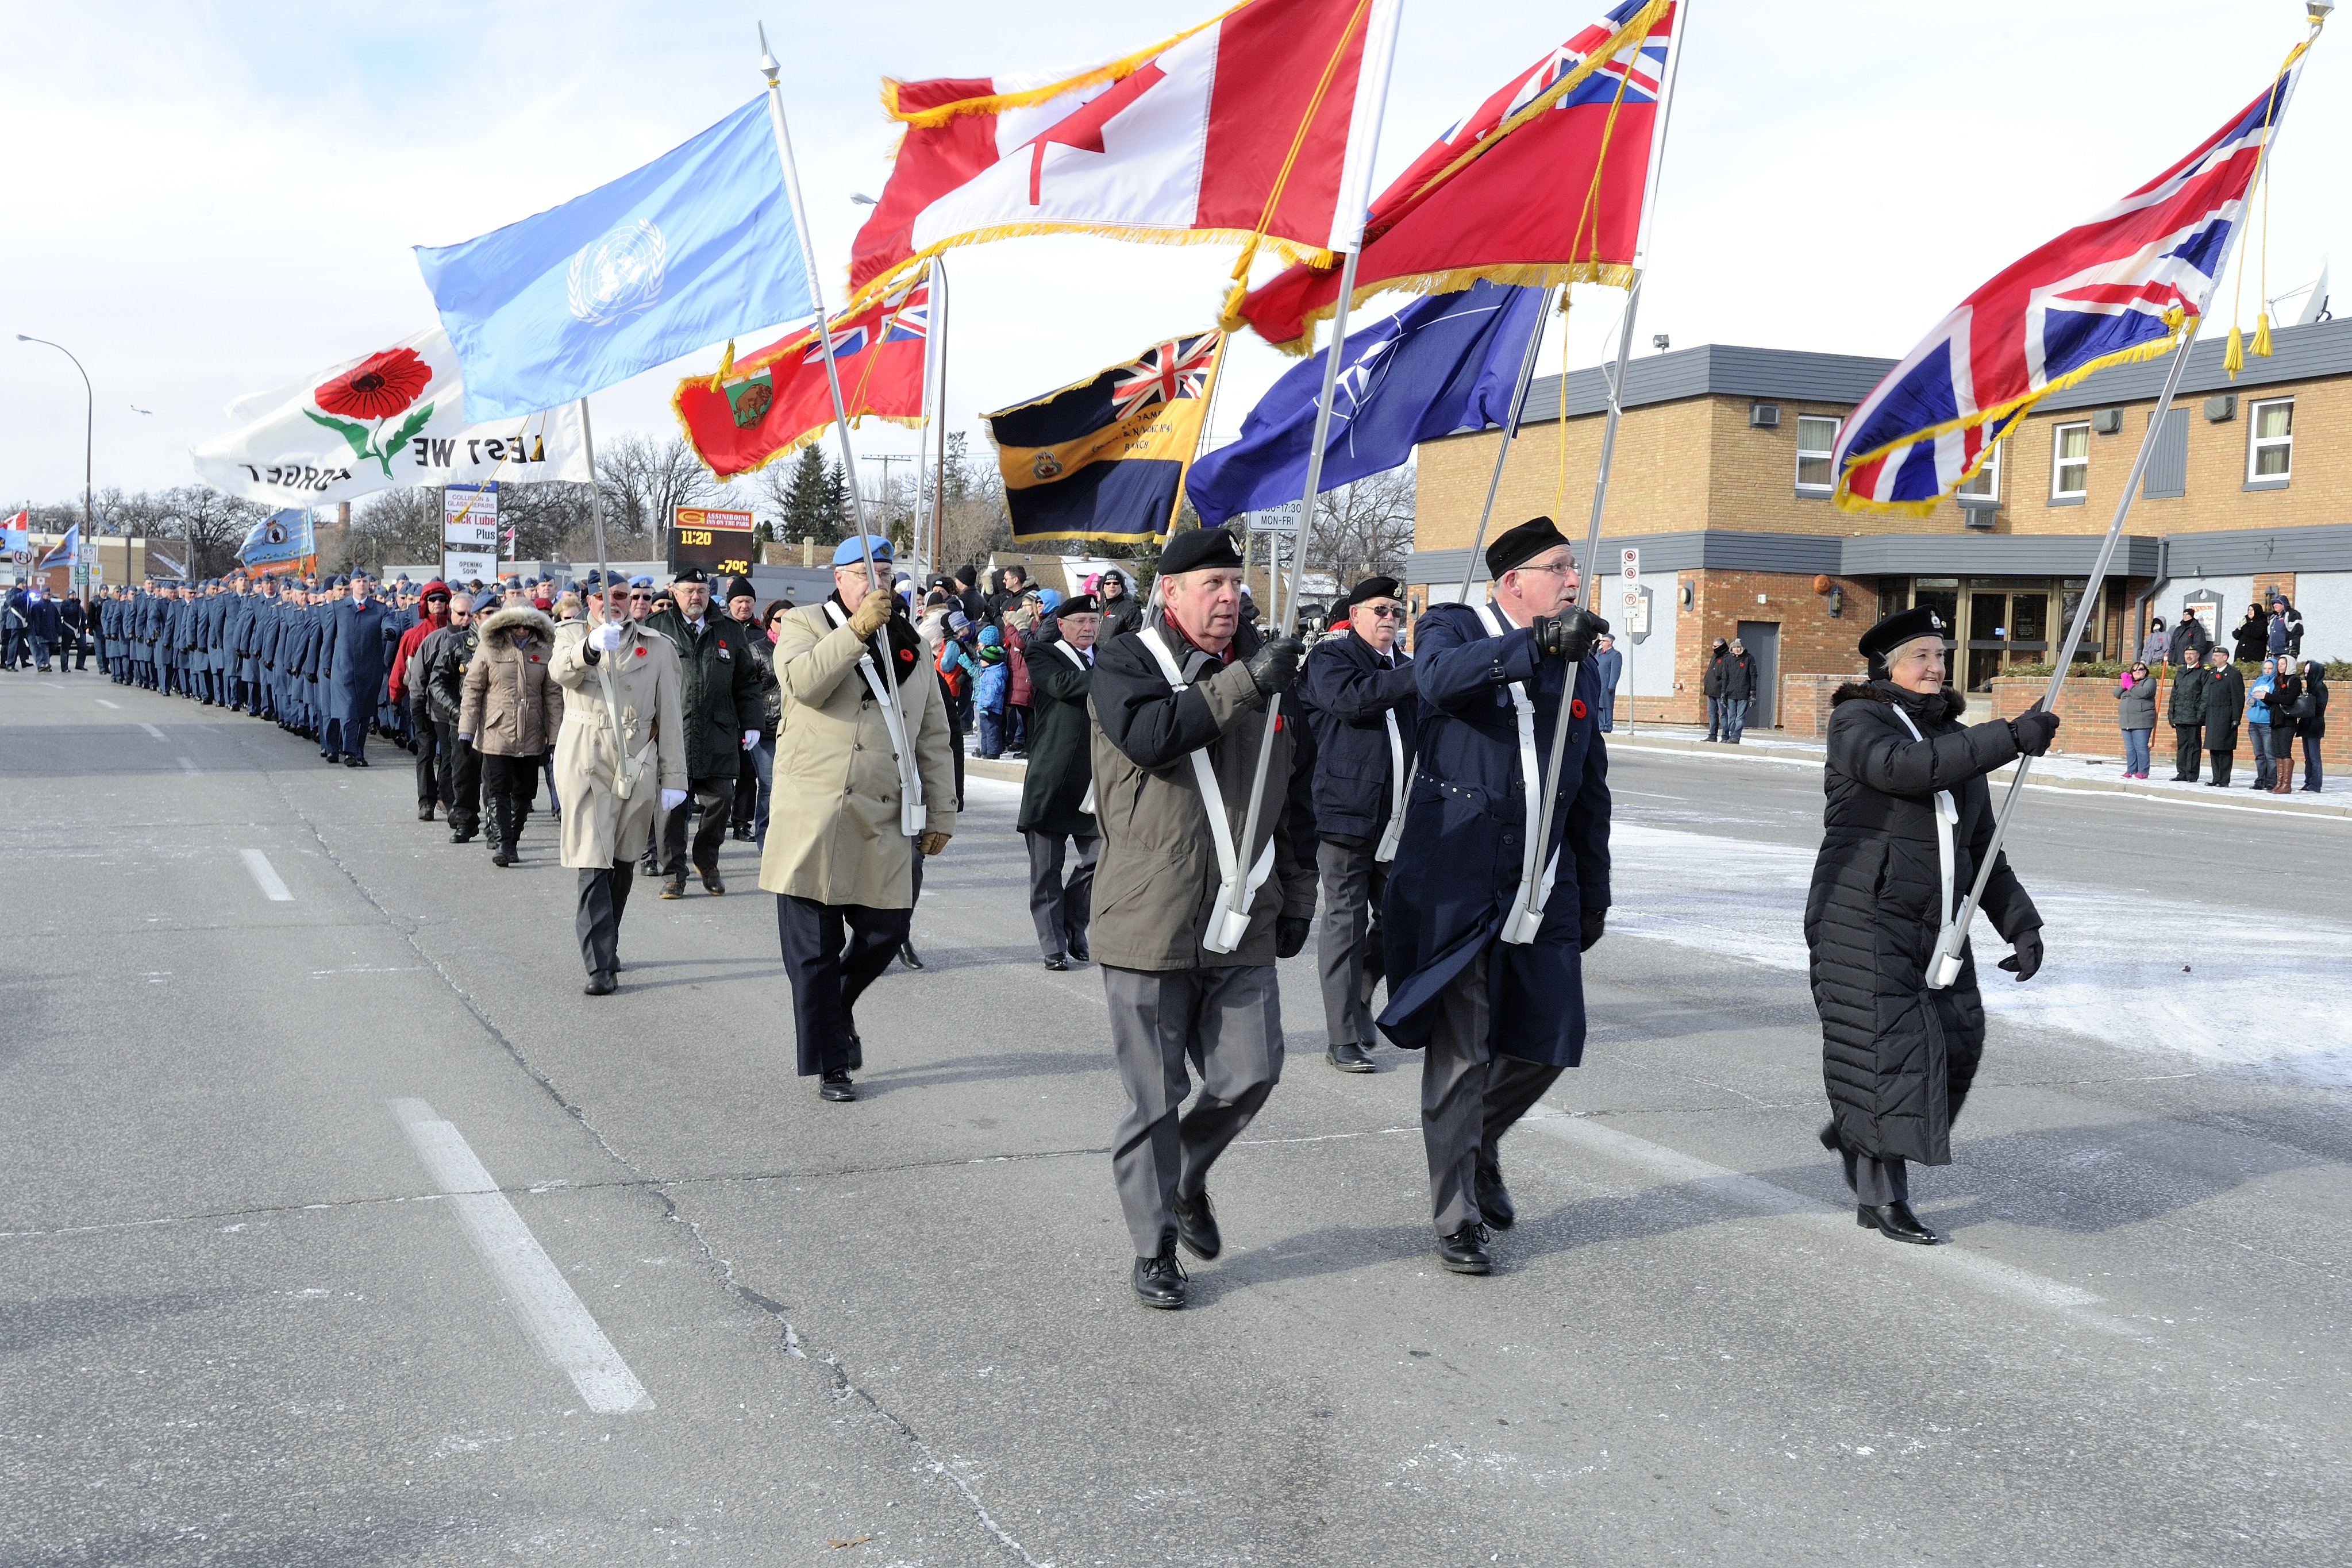 The Colour Party leads the Remembrance Day parade at Bruce Park on November 11, 2014 in Winnipeg, Manitoba. PHOTO: Private Darryl Hepner